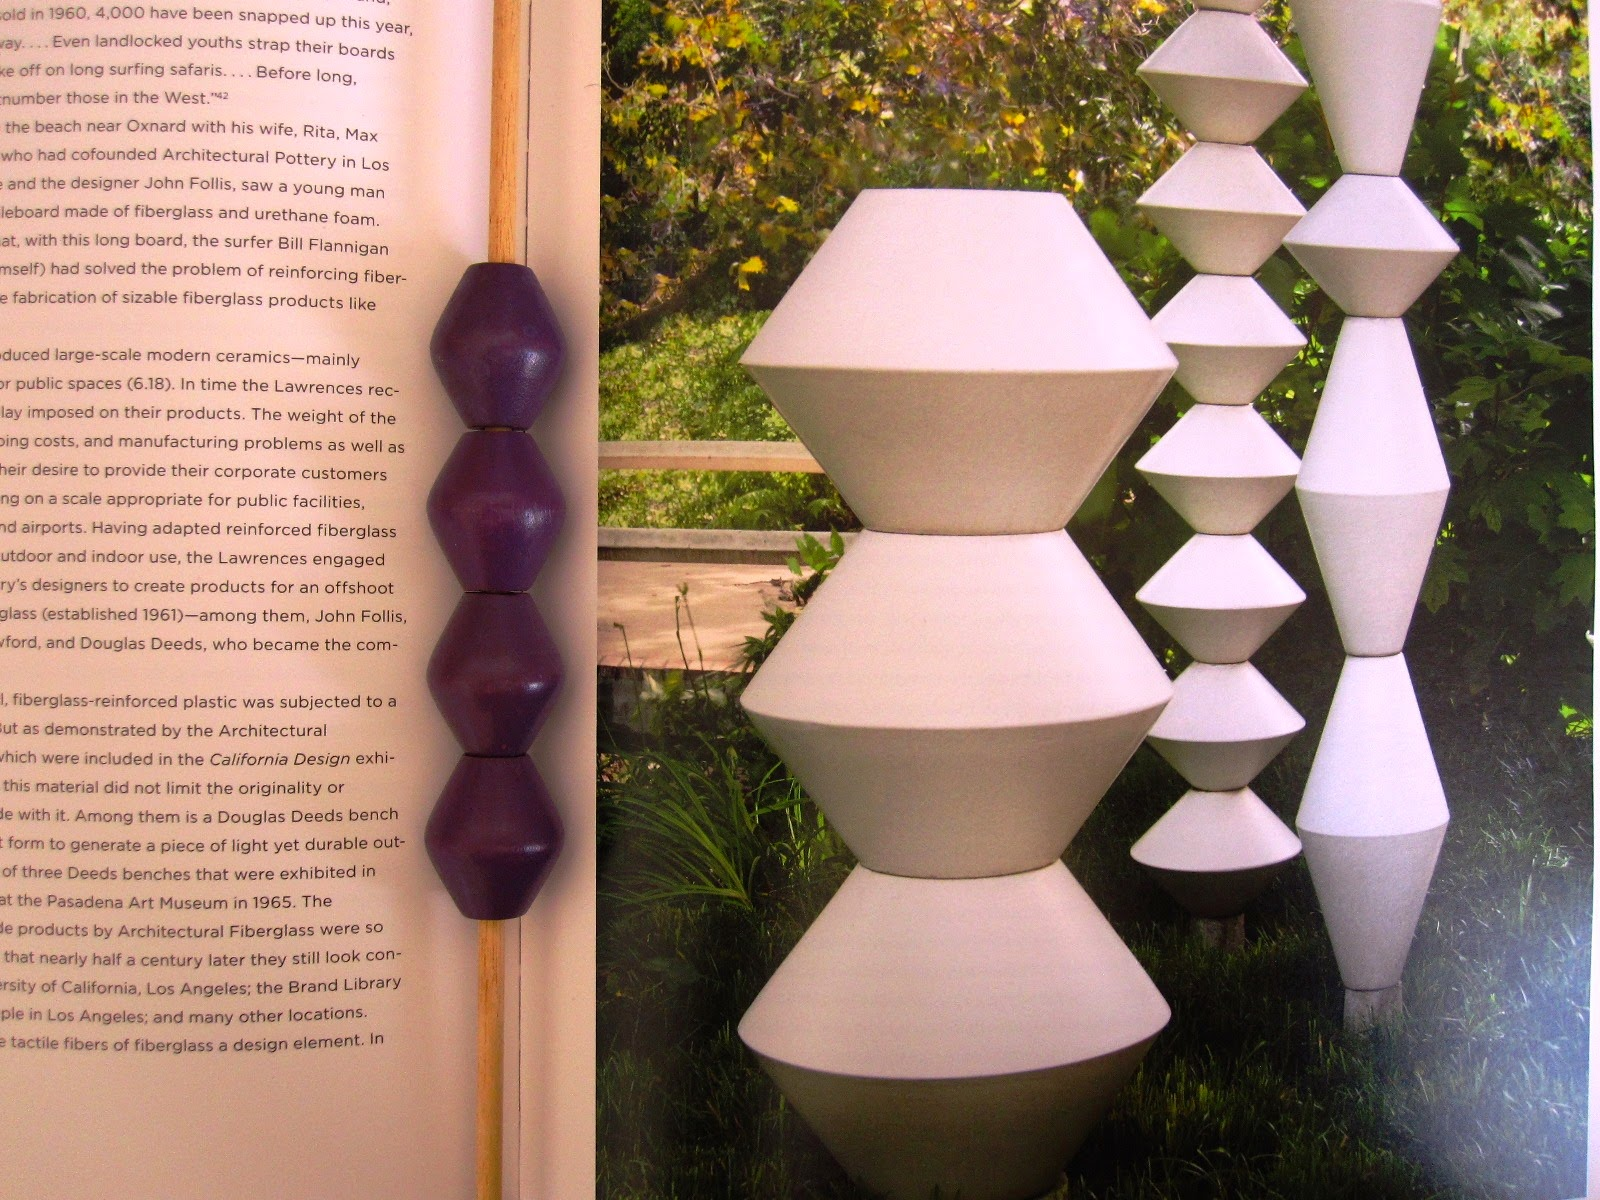 Picture in a book of La Gardo Tackett's garden sculptures, with four purple wooden beads lined up next to it.